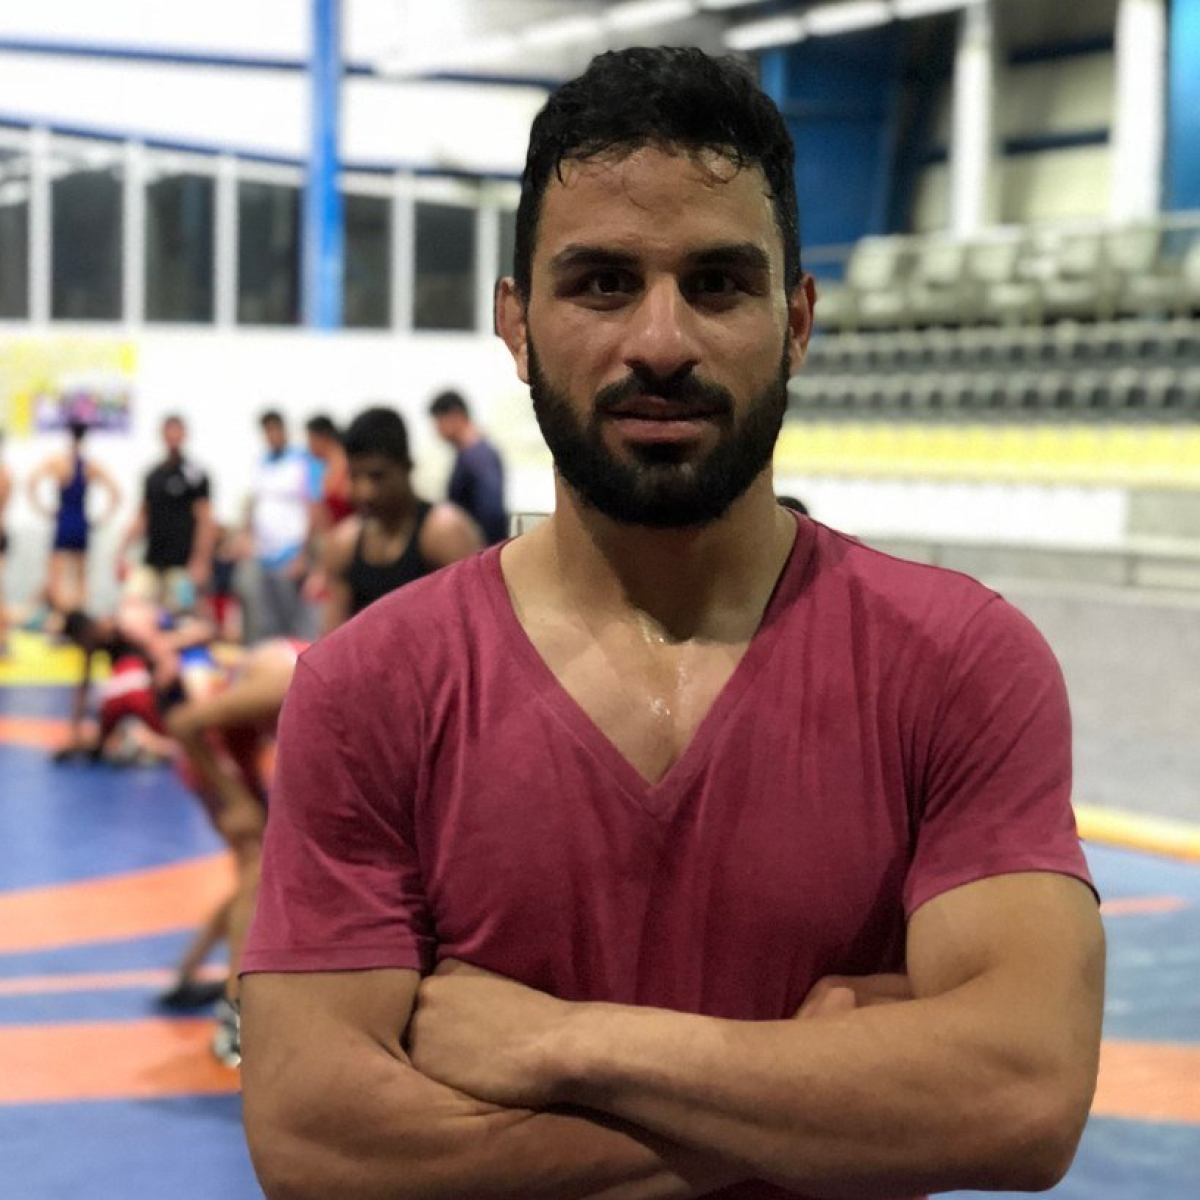 Execution of wrestler Navid Afkari by Iran 'deeply upsetting': International Olympic Committee